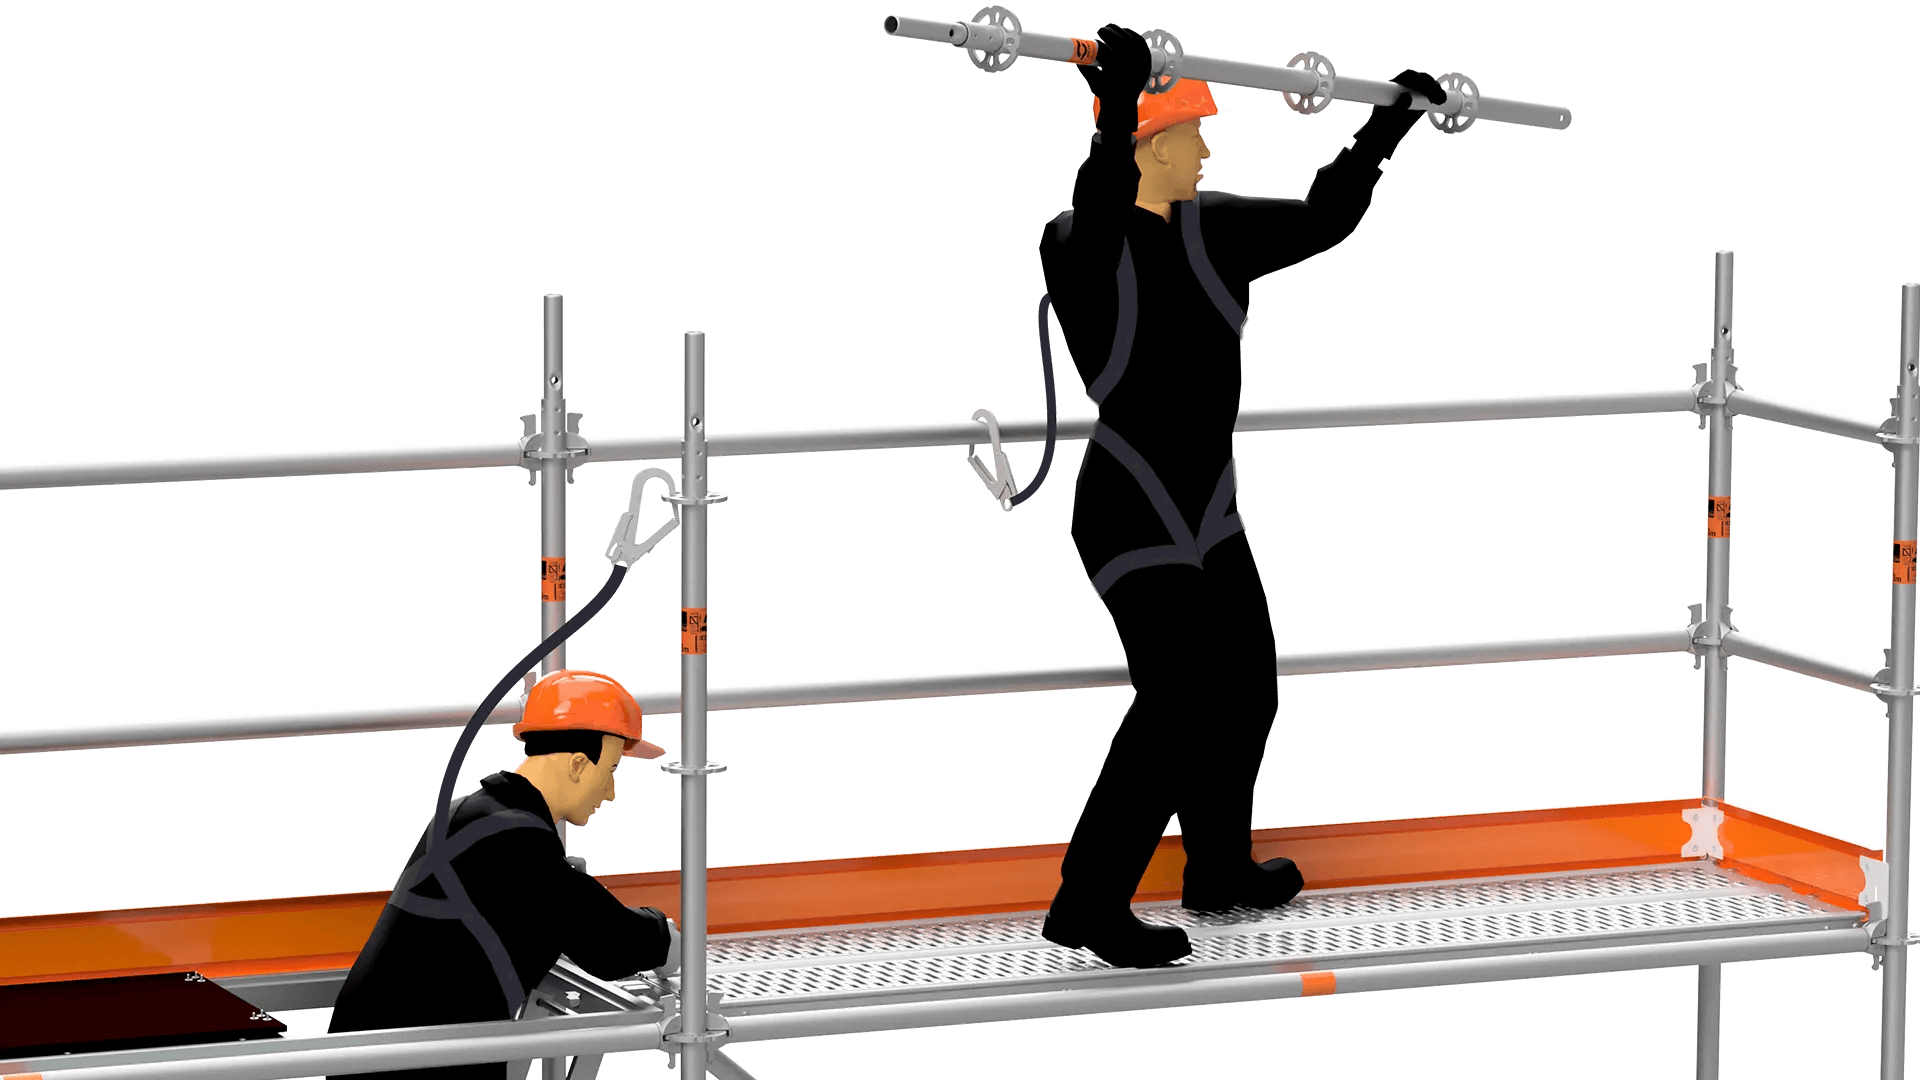 scaffolding safety harness